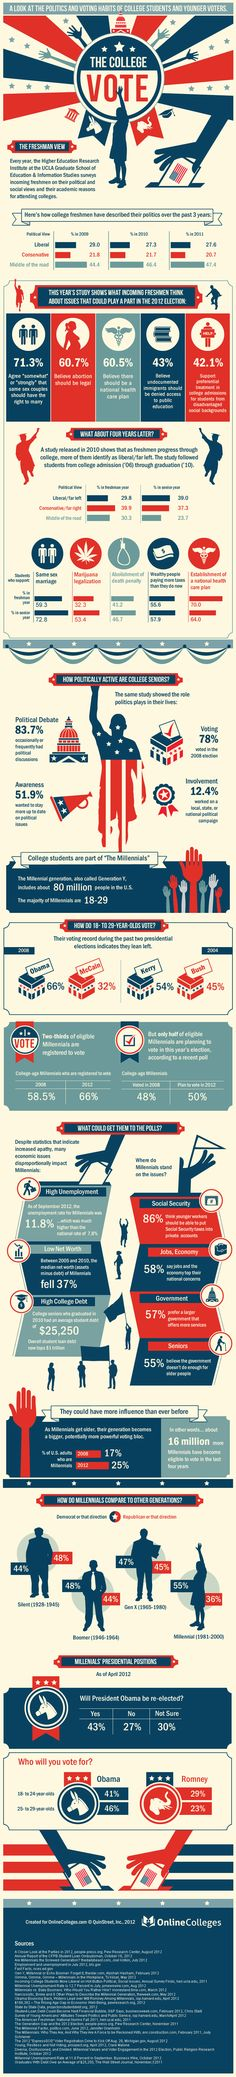 The College Vote: A look at the politics and voting habits of college students and younger voters. Web Design, Page Design, Layout Design, Information Design, Information Graphics, Visualisation, Data Visualization, Sistema Visual, Marketing